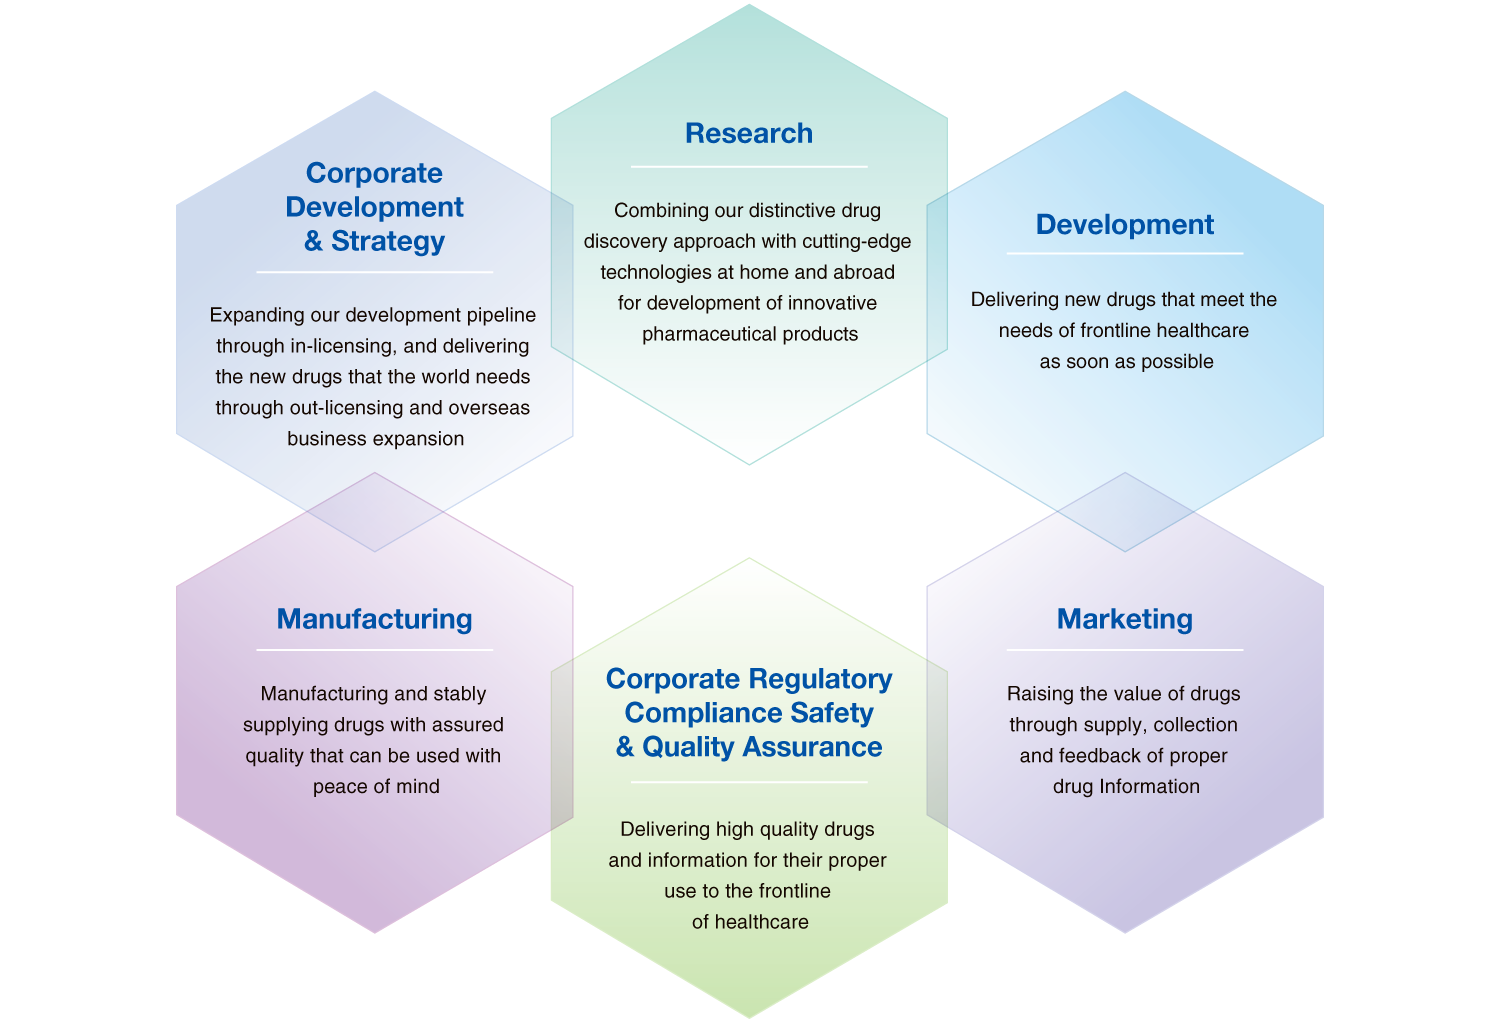 Research: Combining our distinctive drugdiscovery approach with cutting-edgetechnologies at home and abroadfor development of innovativepharmaceutical products, Development: Delivering new drugs that meet theneeds of frontline healthcareas soon as possible, Marketing: Raising the value of drugsthrough supply, collectionand feedback of properdrug Information, Corporate RegulatoryCompliance Safety& Quality Assurance: Delivering high quality drugsand information for their properuse to the frontlineof healthcare, Manufacturing: Manufacturing and stablysupplying drugs with assuredquality that can be used withpeace of mind, CorporateDevelopment& Strategy: Expanding our development pipelinethrough in-licensing, and deliveringthe new drugs that the world needsthrough out-licensing and overseasbusiness expansion